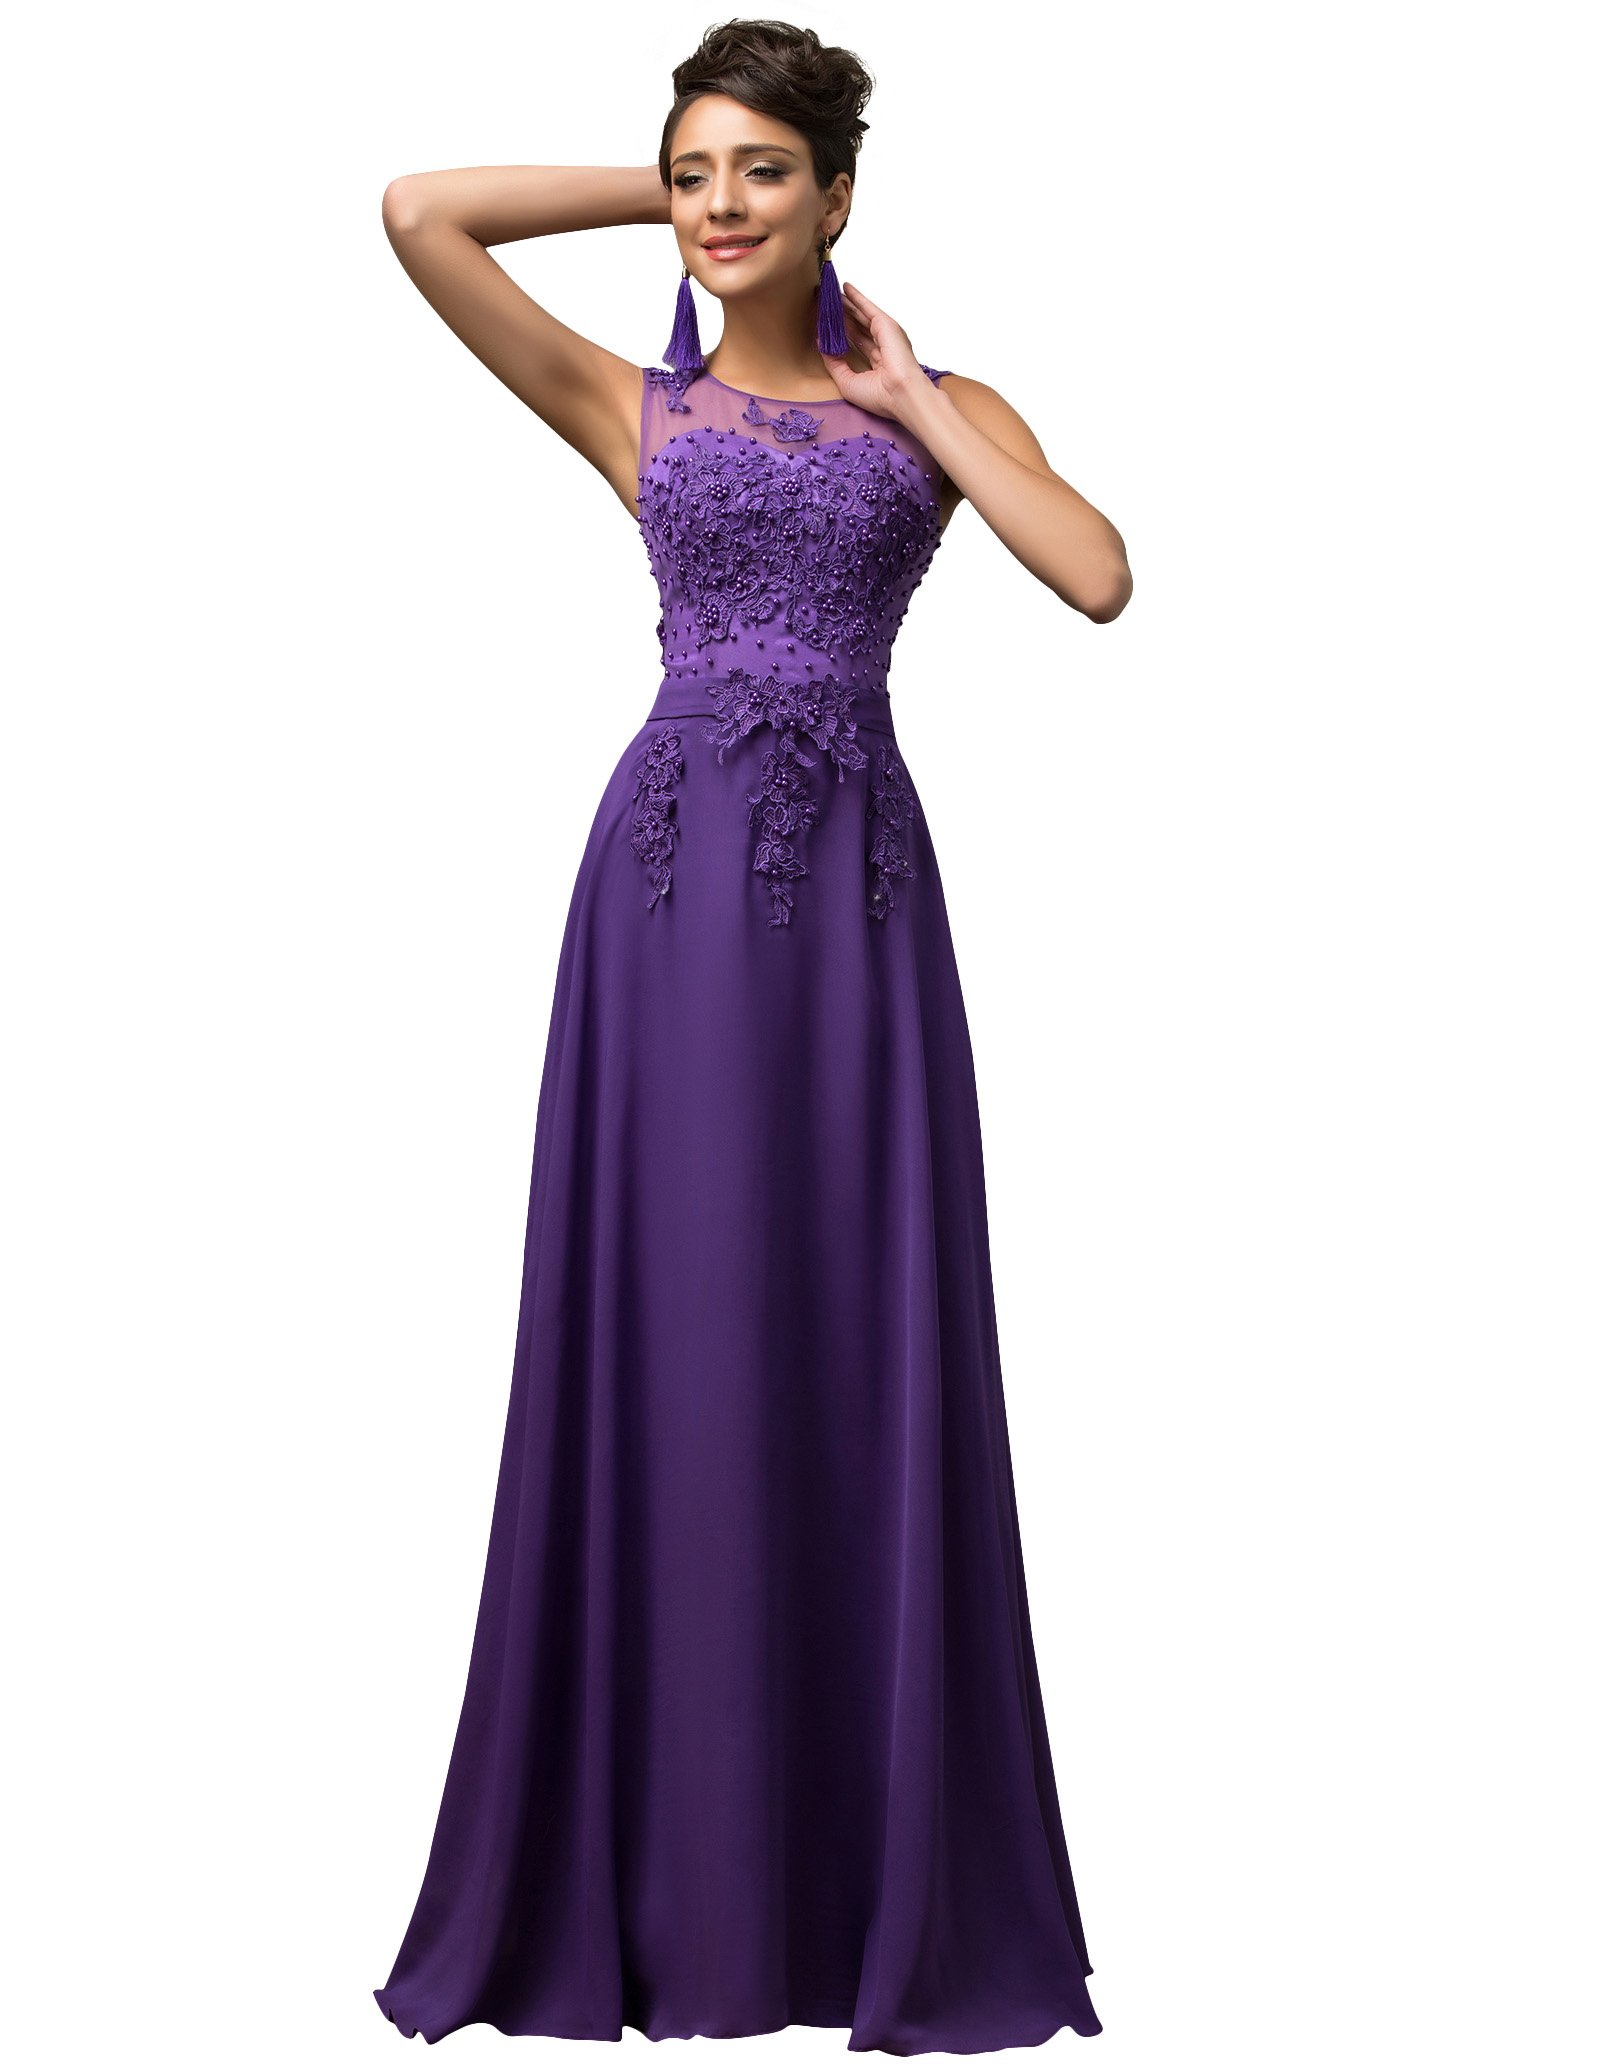 Women\'s Evening Dresses Size 26: Amazon.co.uk